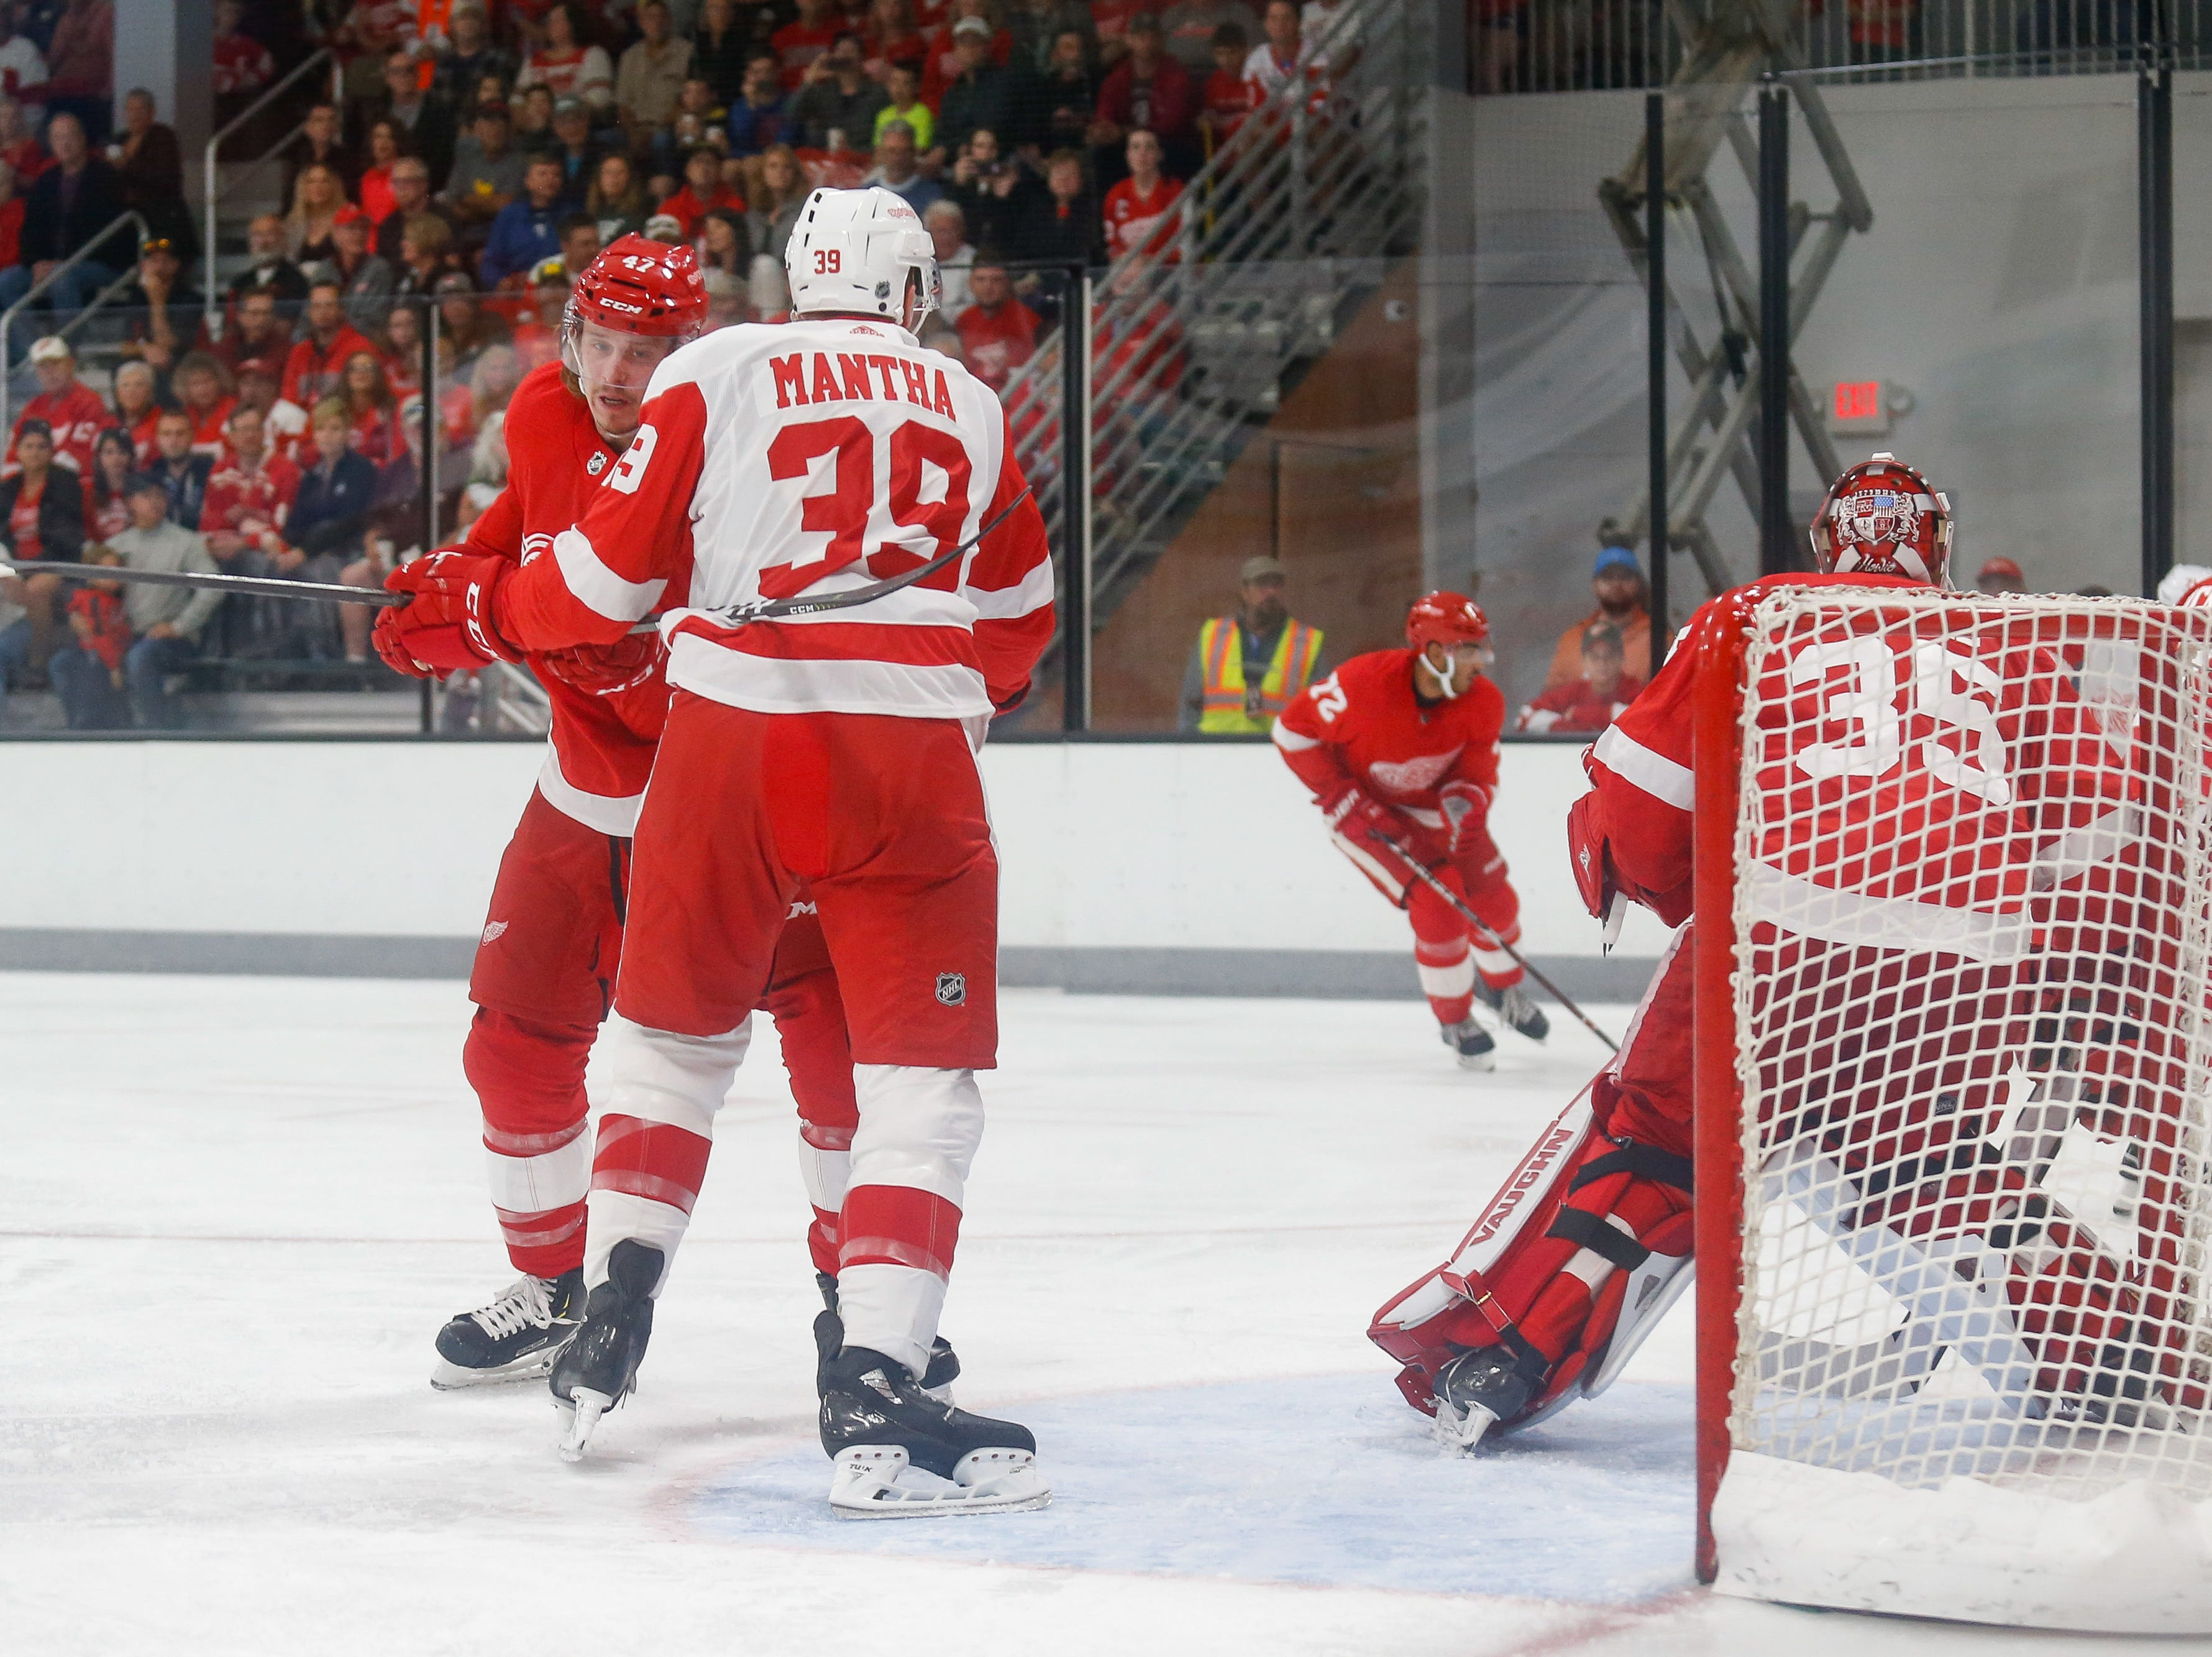 Anthony Mantha (39) tries to maintain position in front of the net as defenseman Libor Sulak (47) tries to move him out.